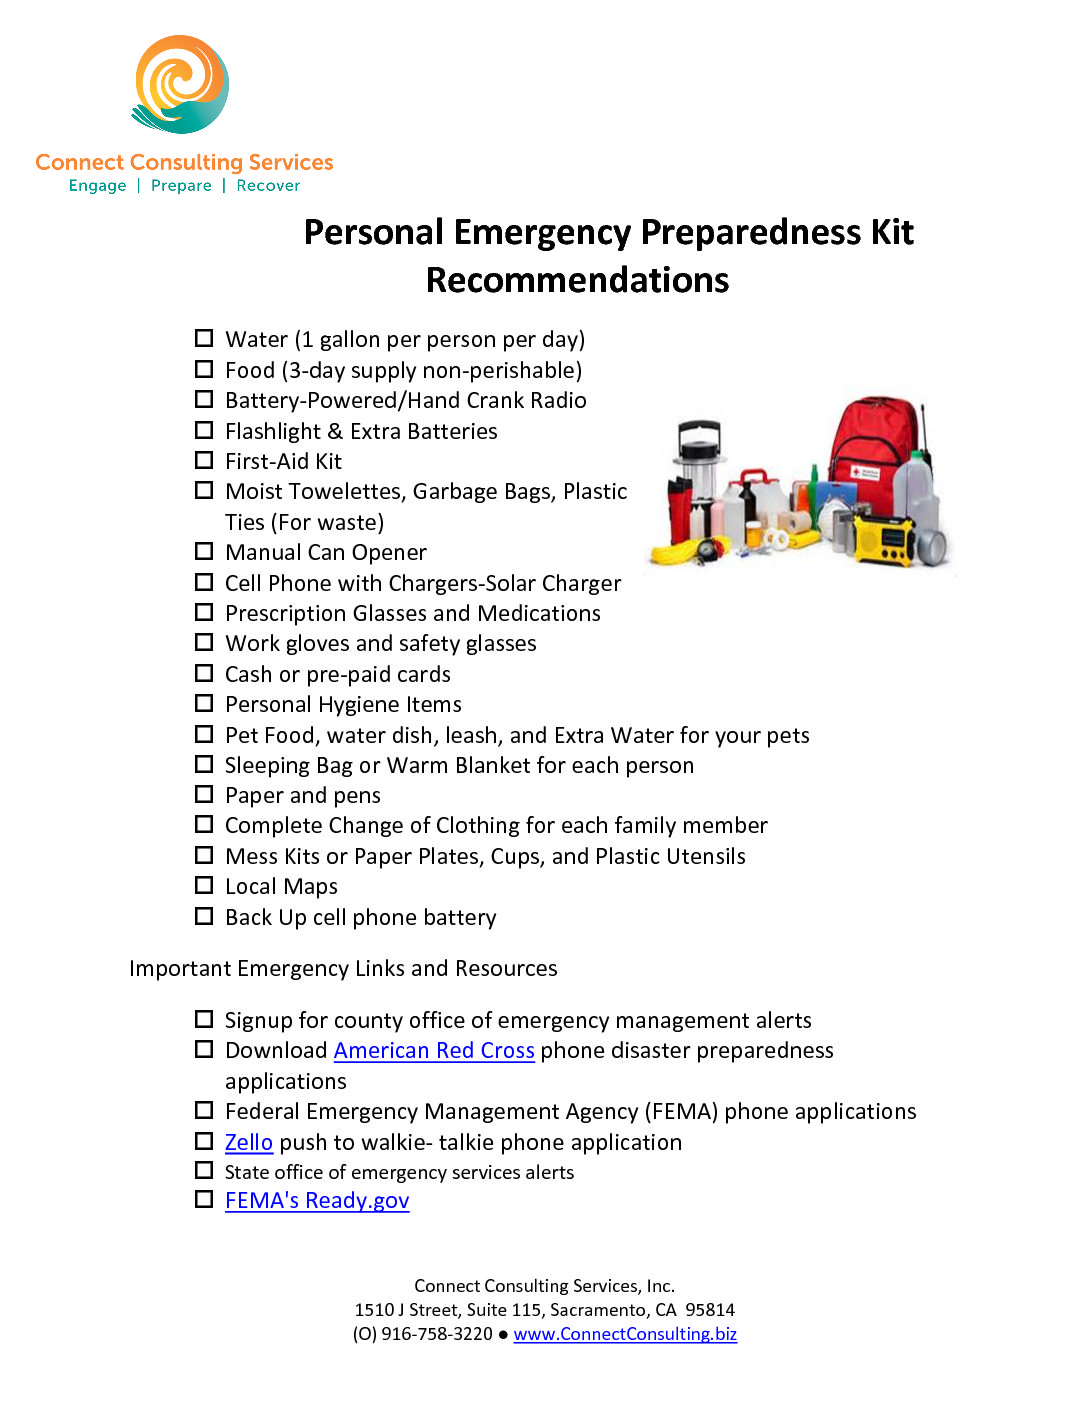 CCS Emergency Preparedness Kit